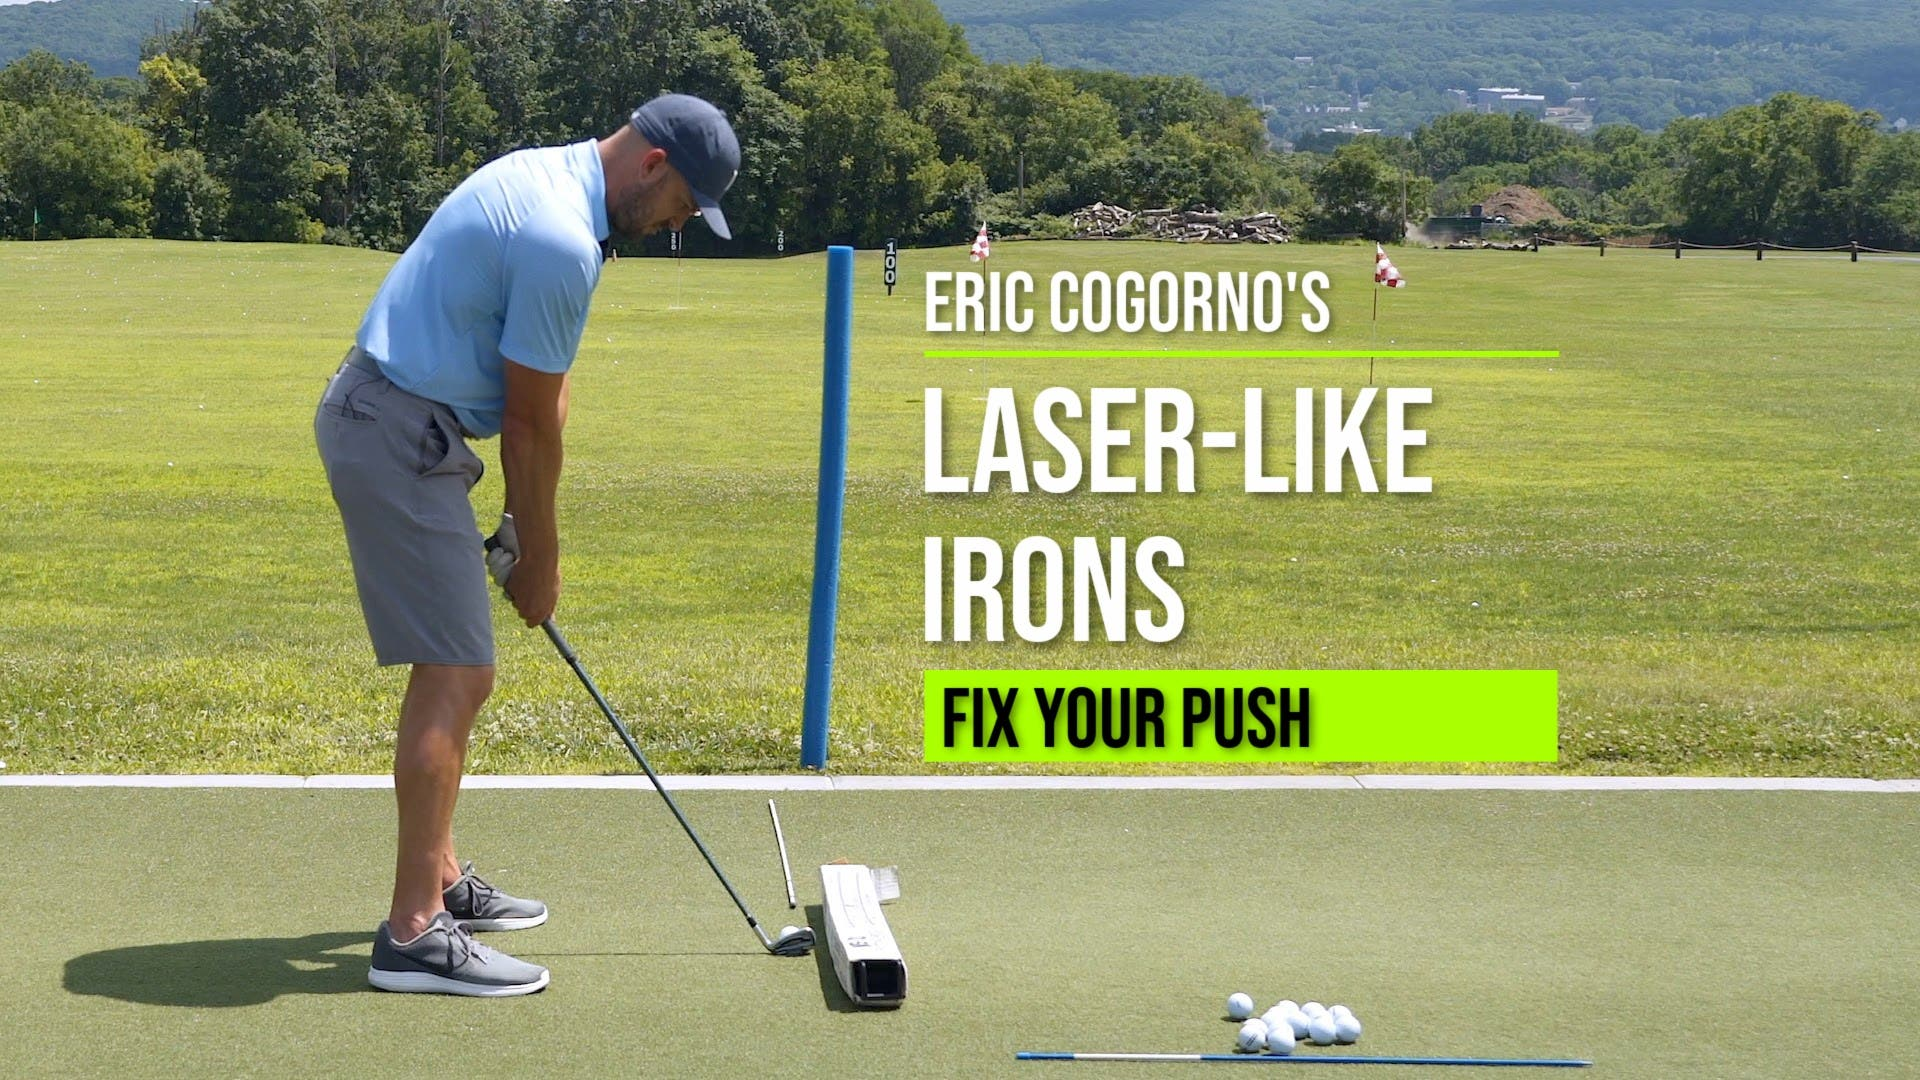 Laser-Like Irons Fix Your Push